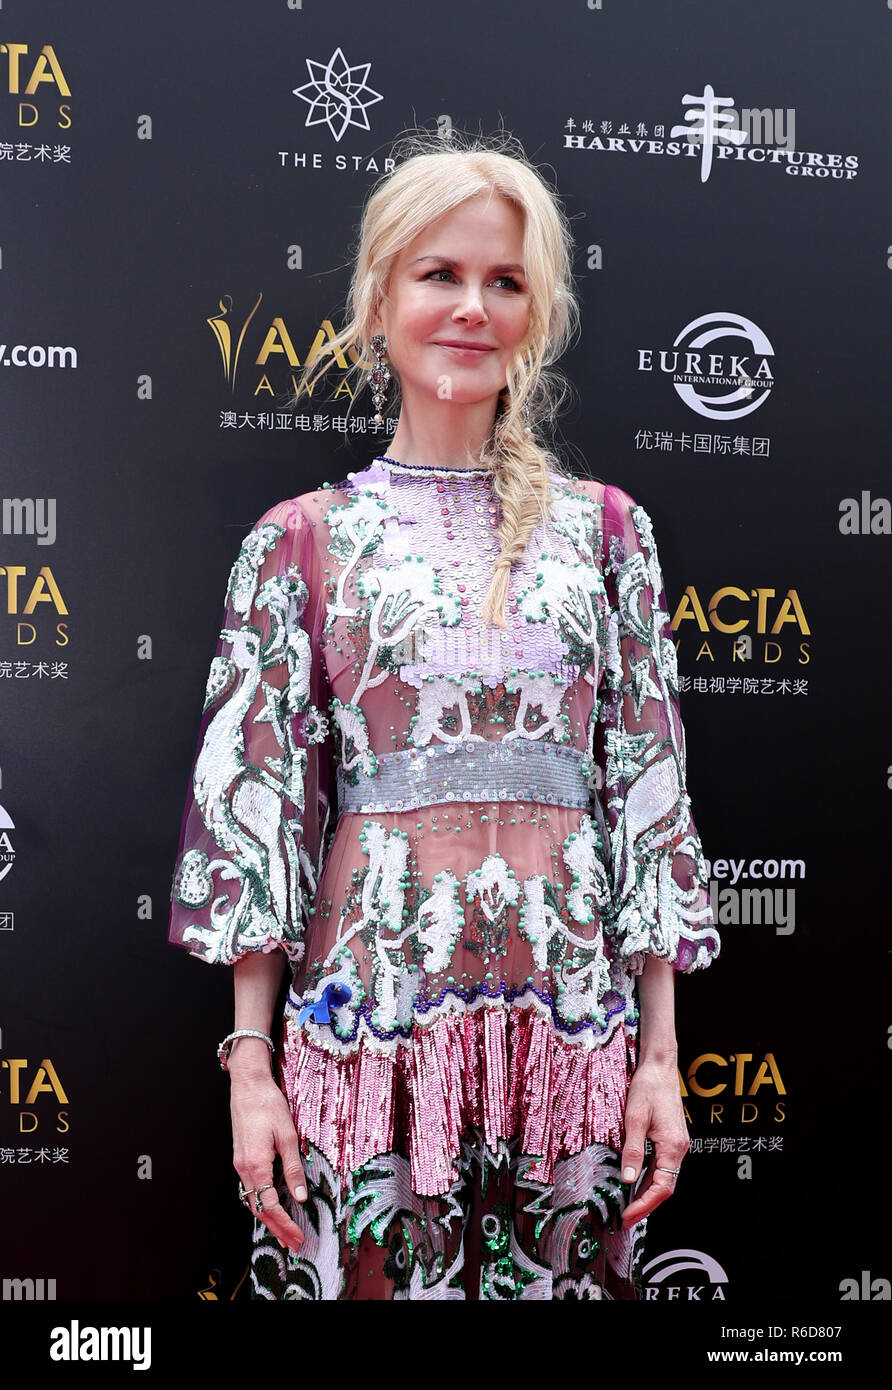 Sydney Australia 5th Dec 2018 Actress Nicole Kidman Poses For Photos On The Red Carpet Of The Australian Academy Of Cinema And Television Arts Aacta Awarding Ceremony In Sydney Australia On Dec